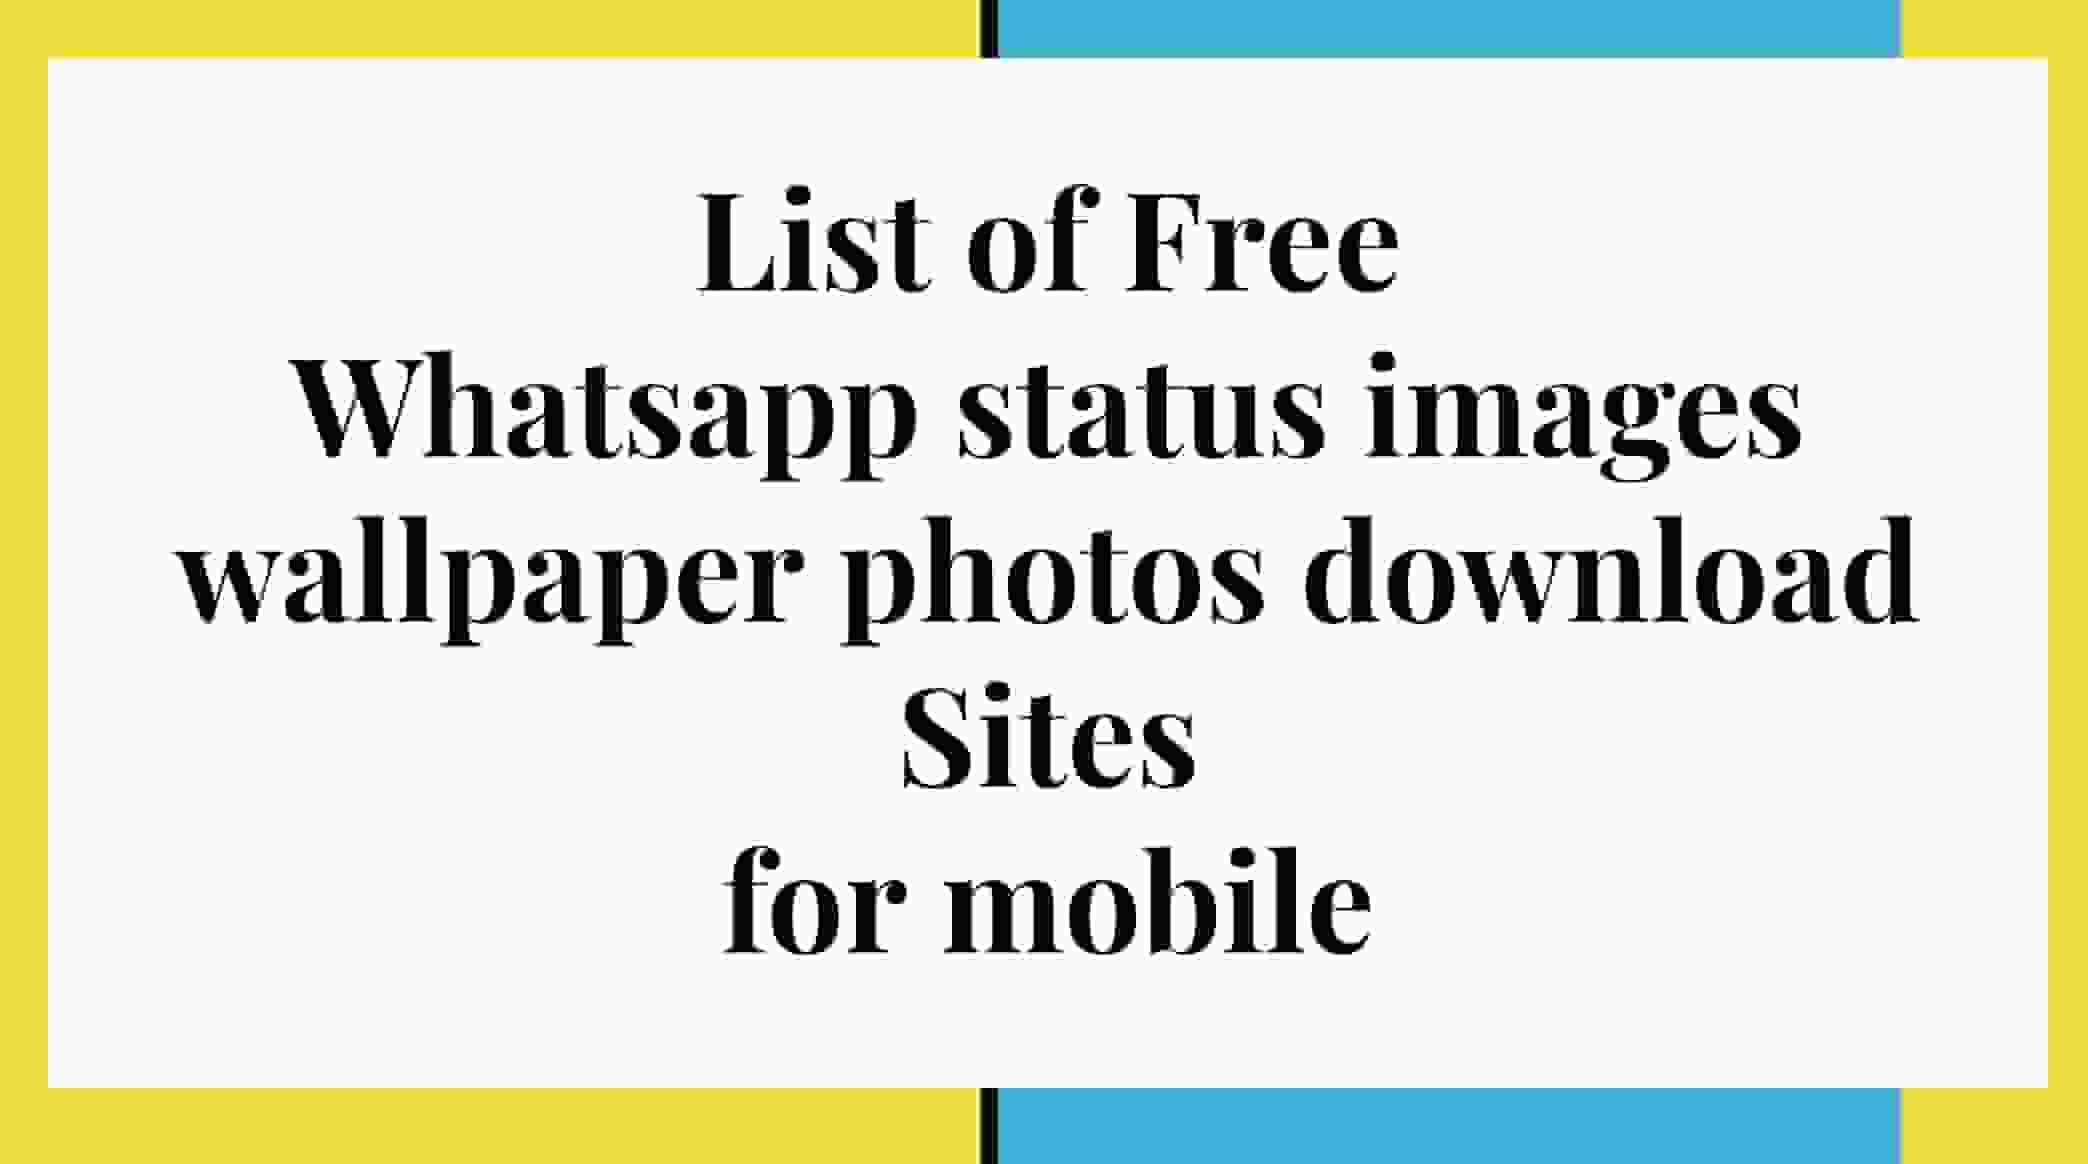 List of 10 100% Free Whatsapp status images wallpaper photos download Sites for mobile